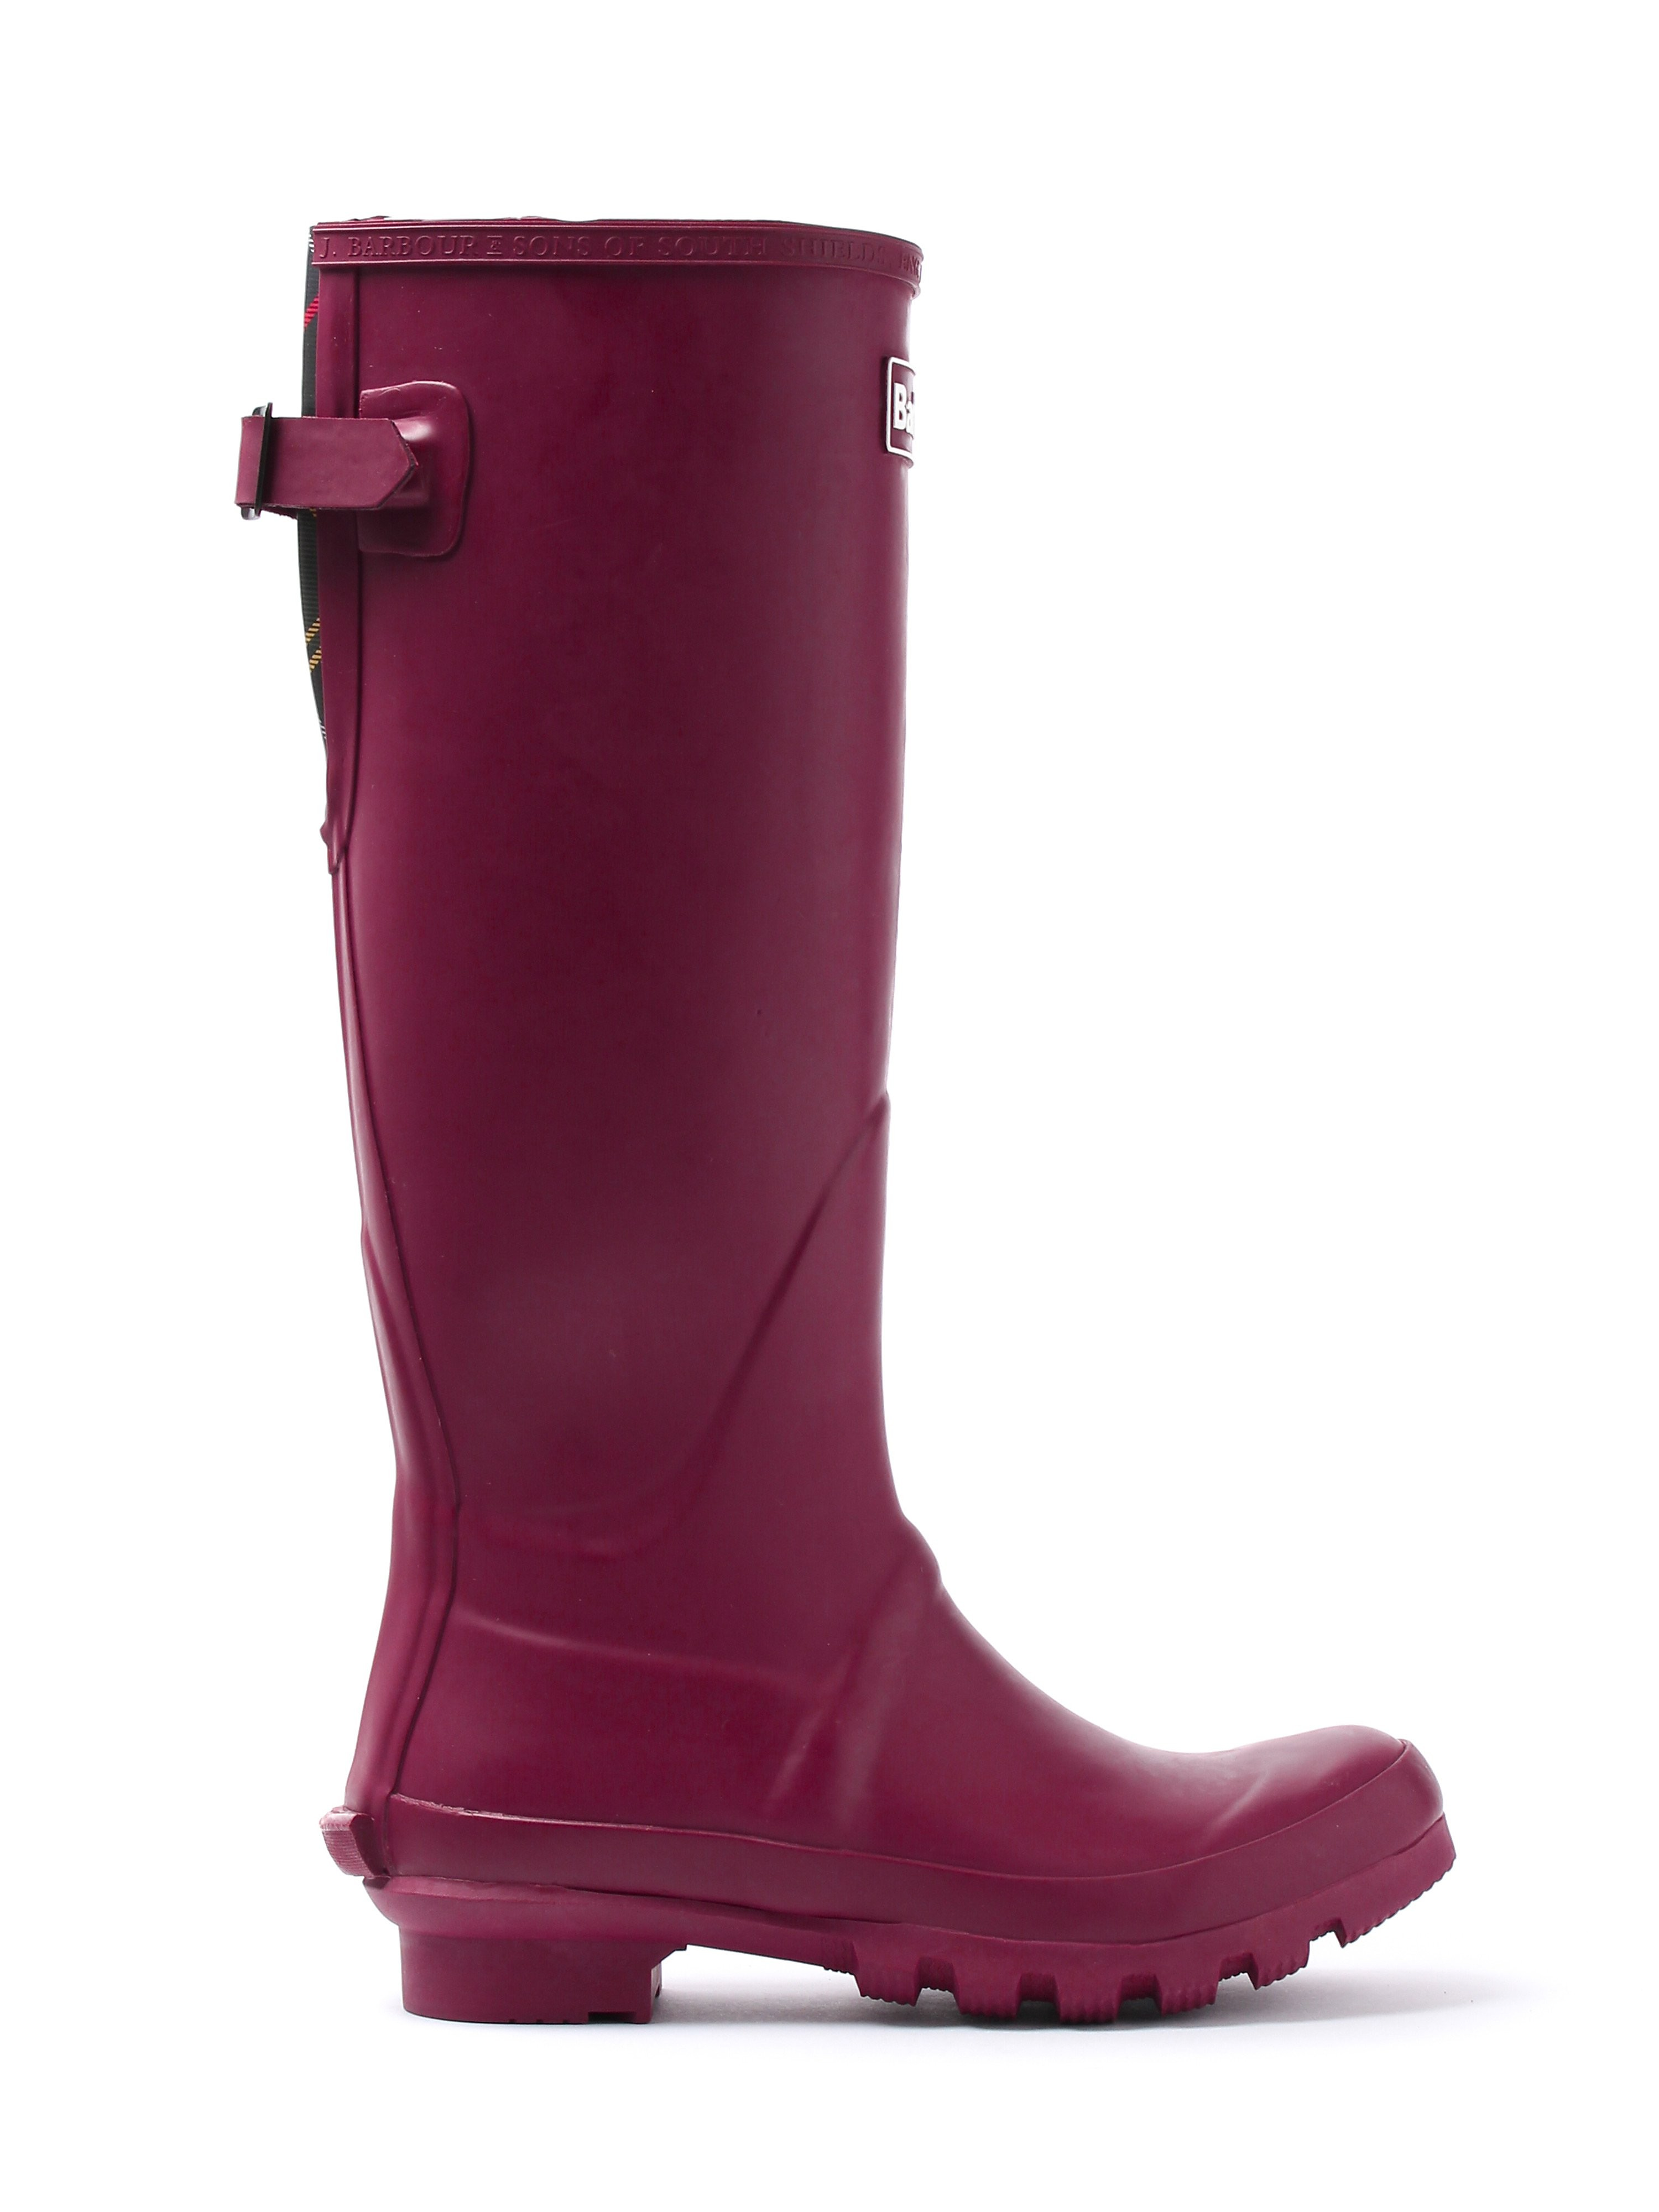 Barbour Women's Jarrow Wellington Boot - Burgundy